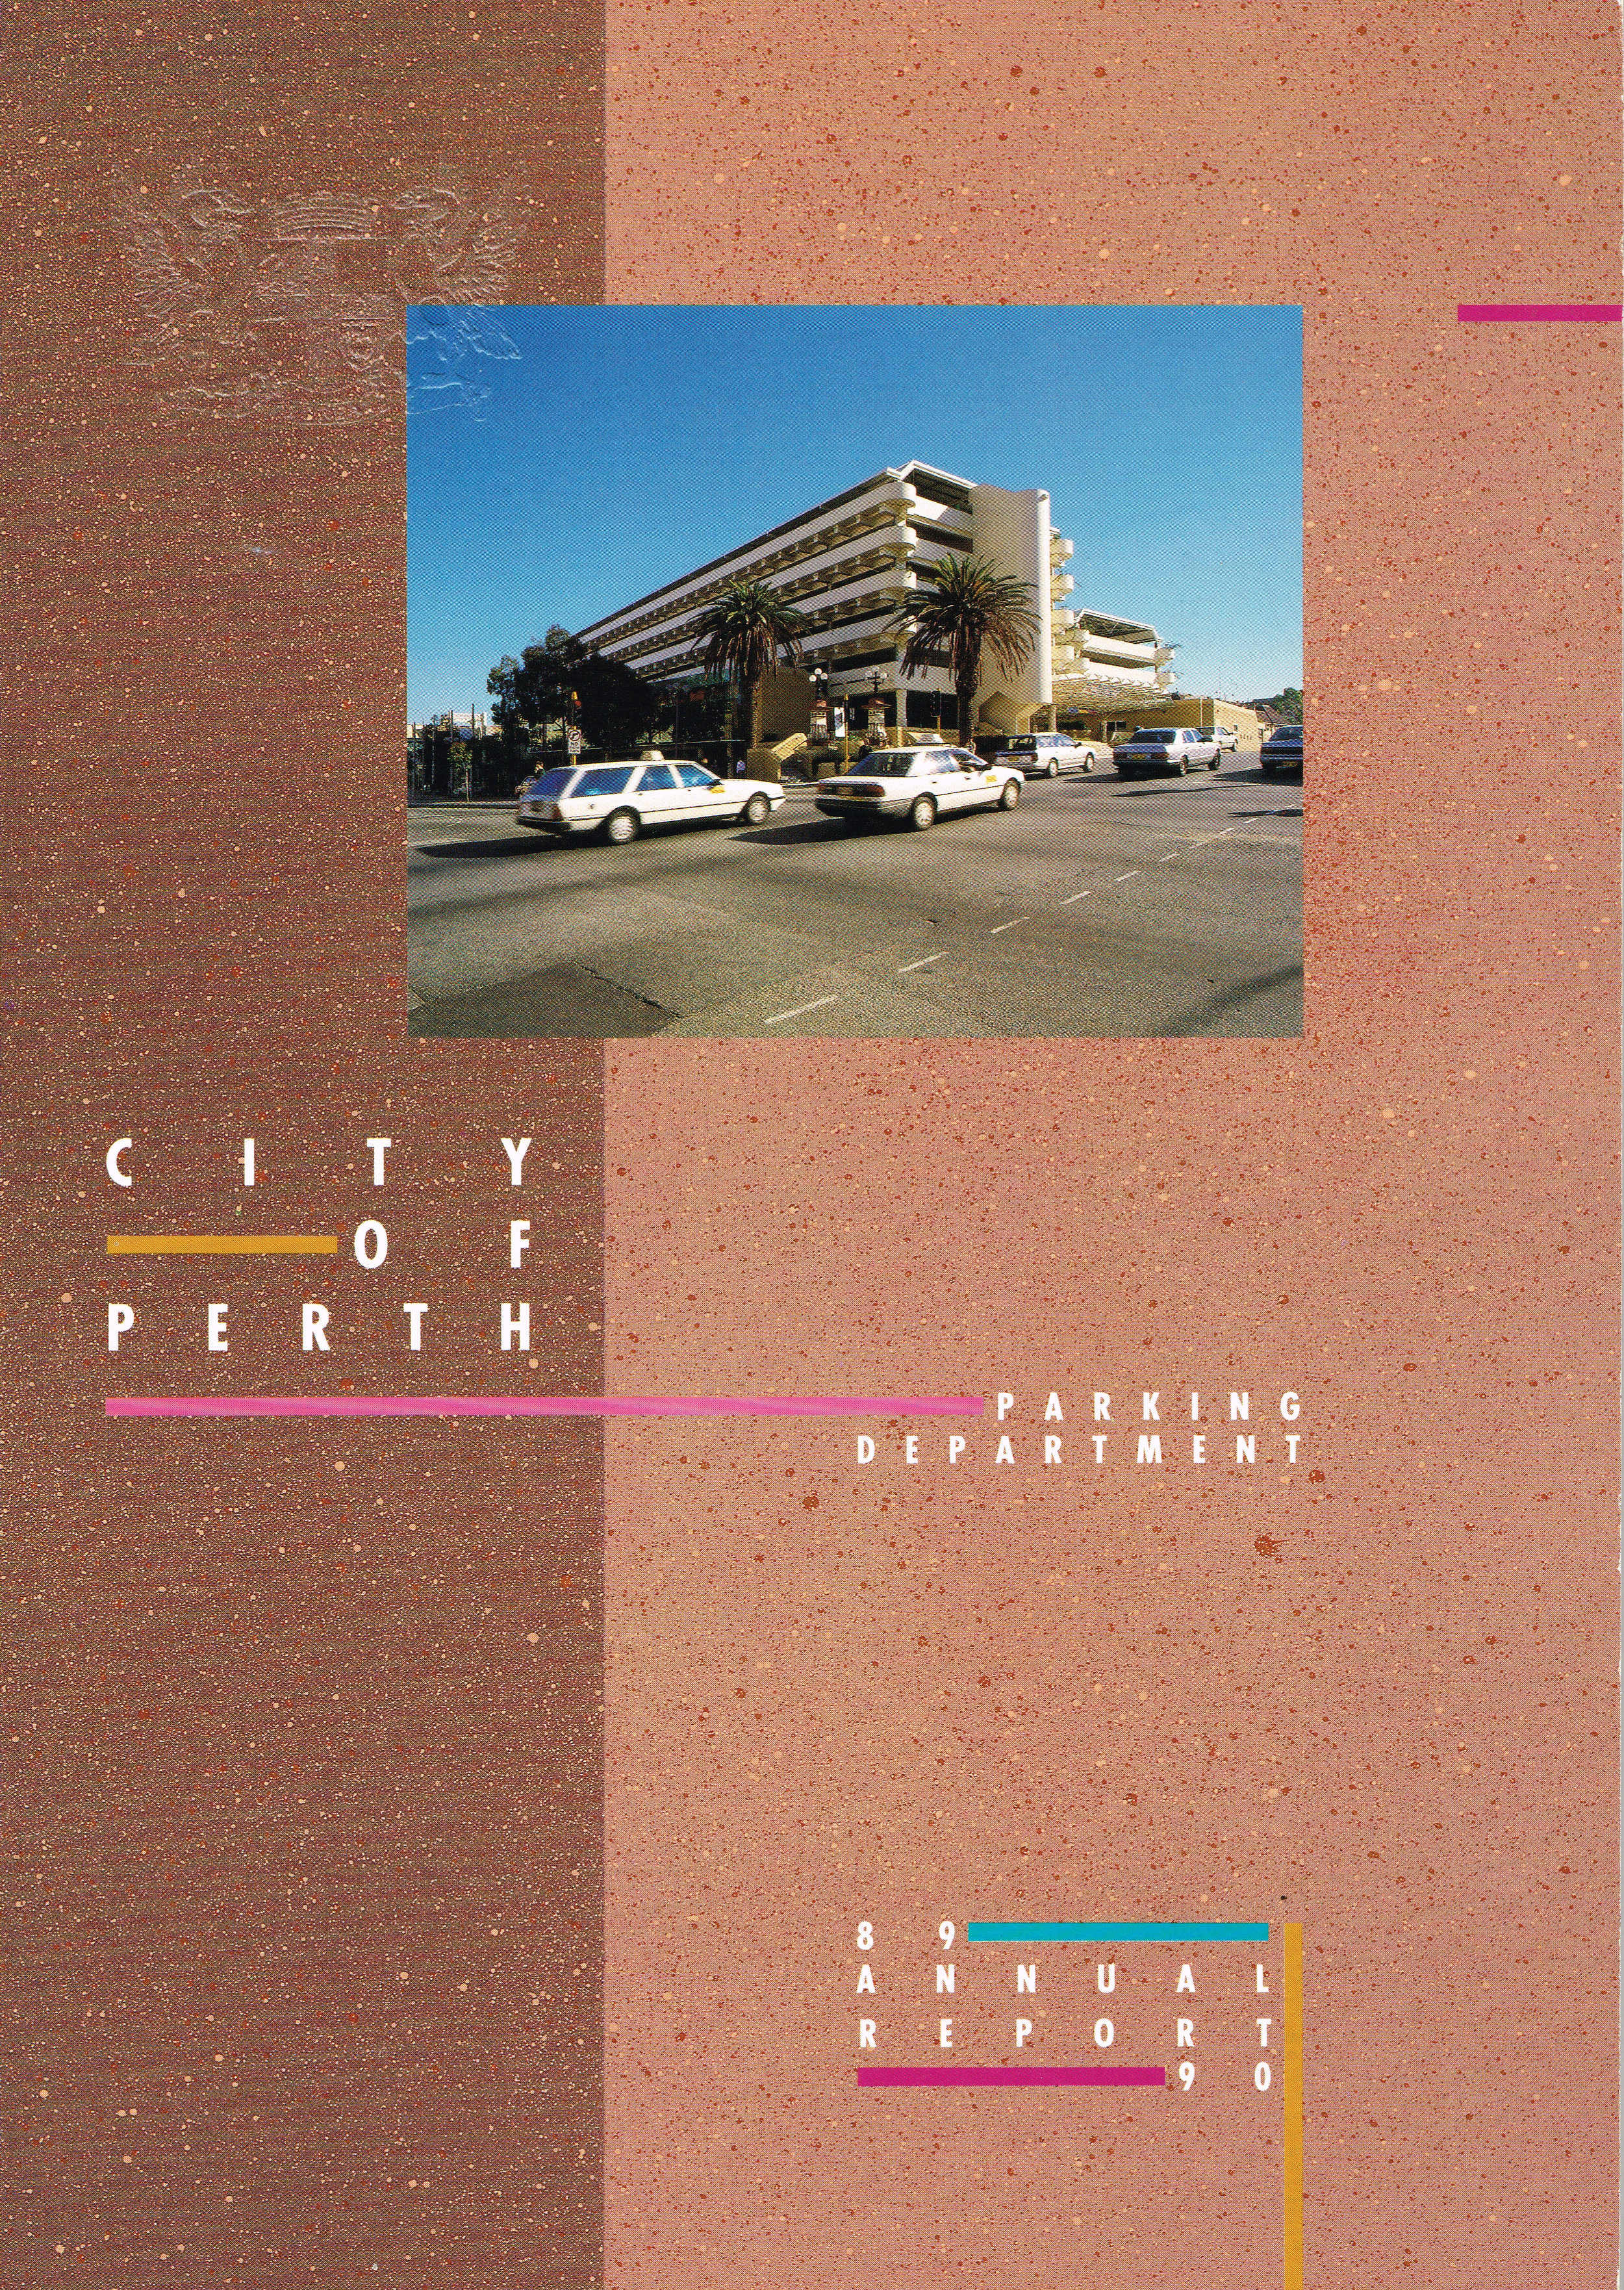 City of Perth Parking Department Annual Report 89-90  City of Perth Parking Department